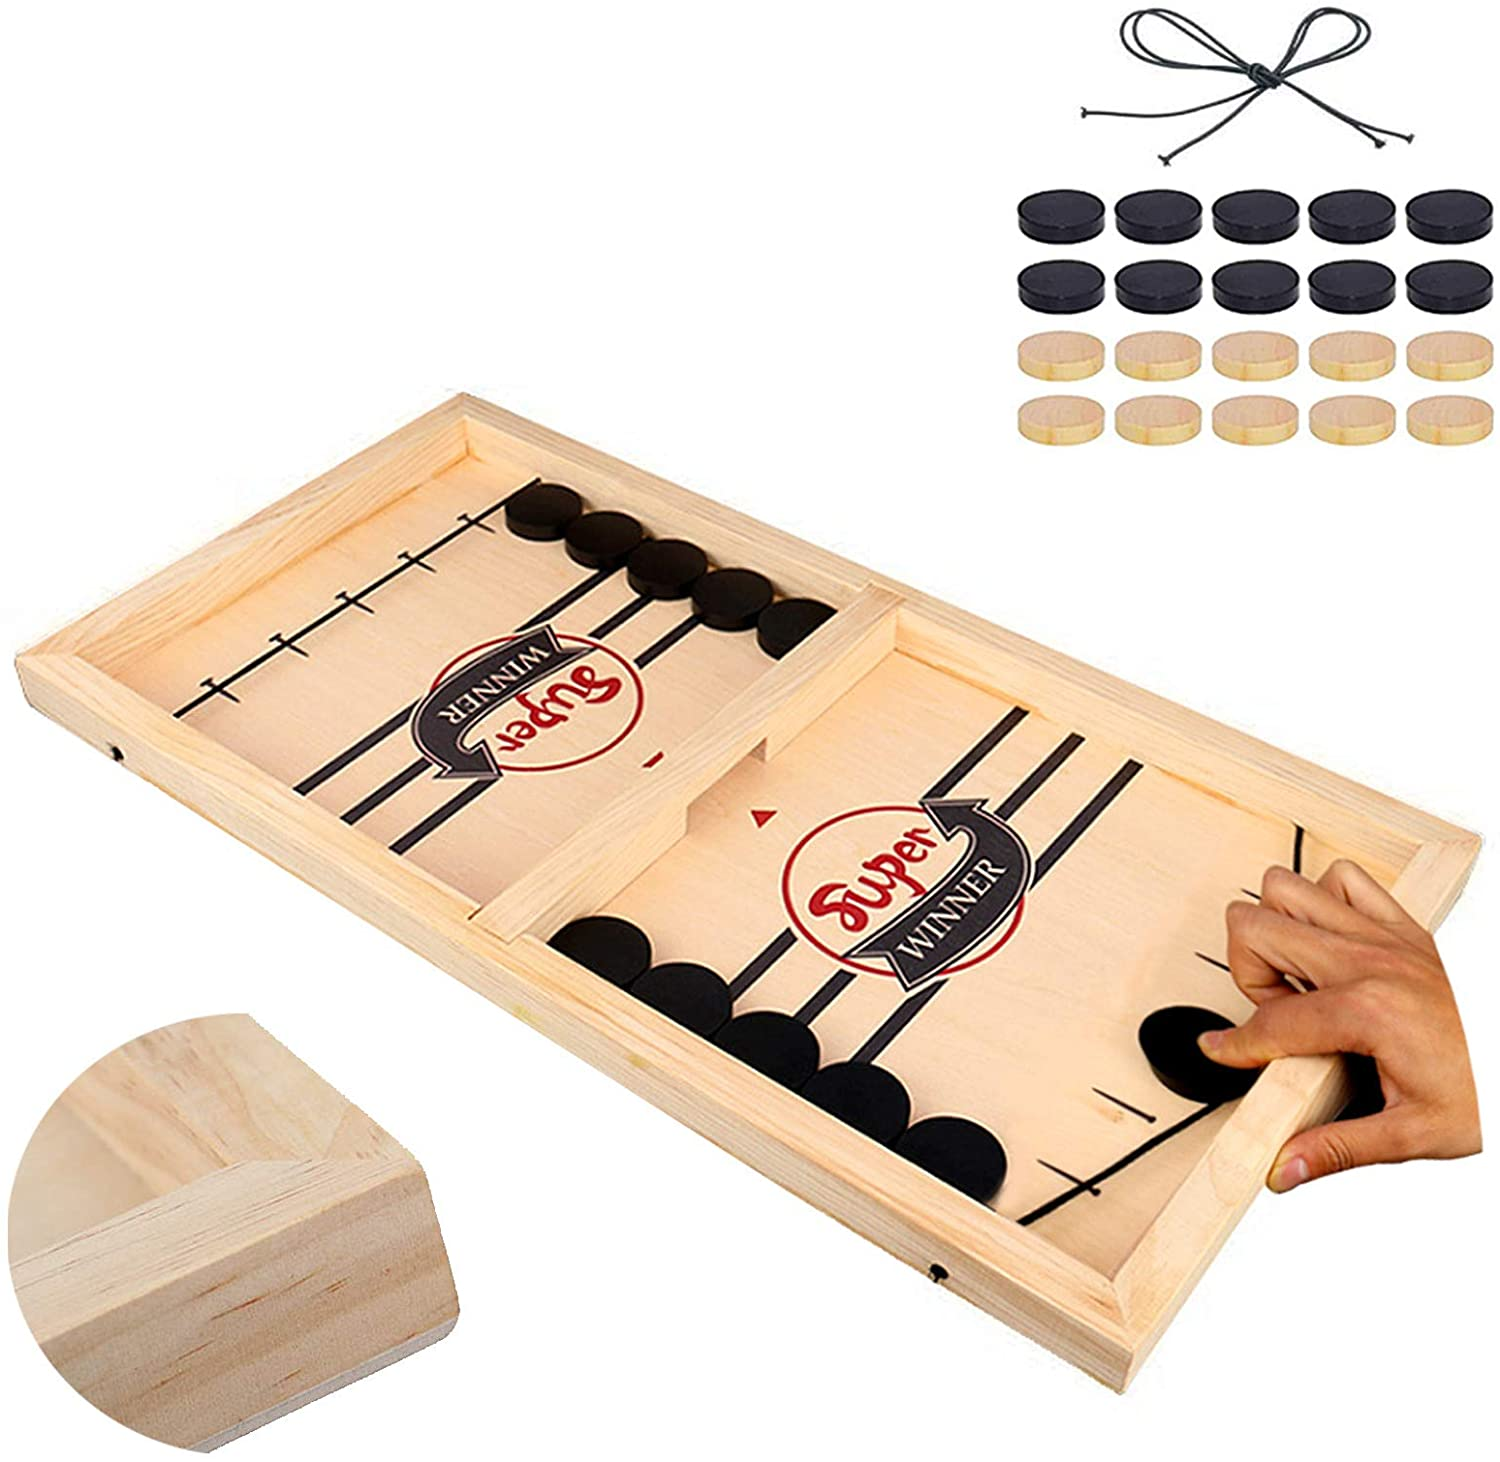 Fast Sling Puck Game , Slingshot Games Toy, Sling Foosball, Paced Winner Board Games Toys for Kids & Adults,Funny Table Hockey Games,Large Size